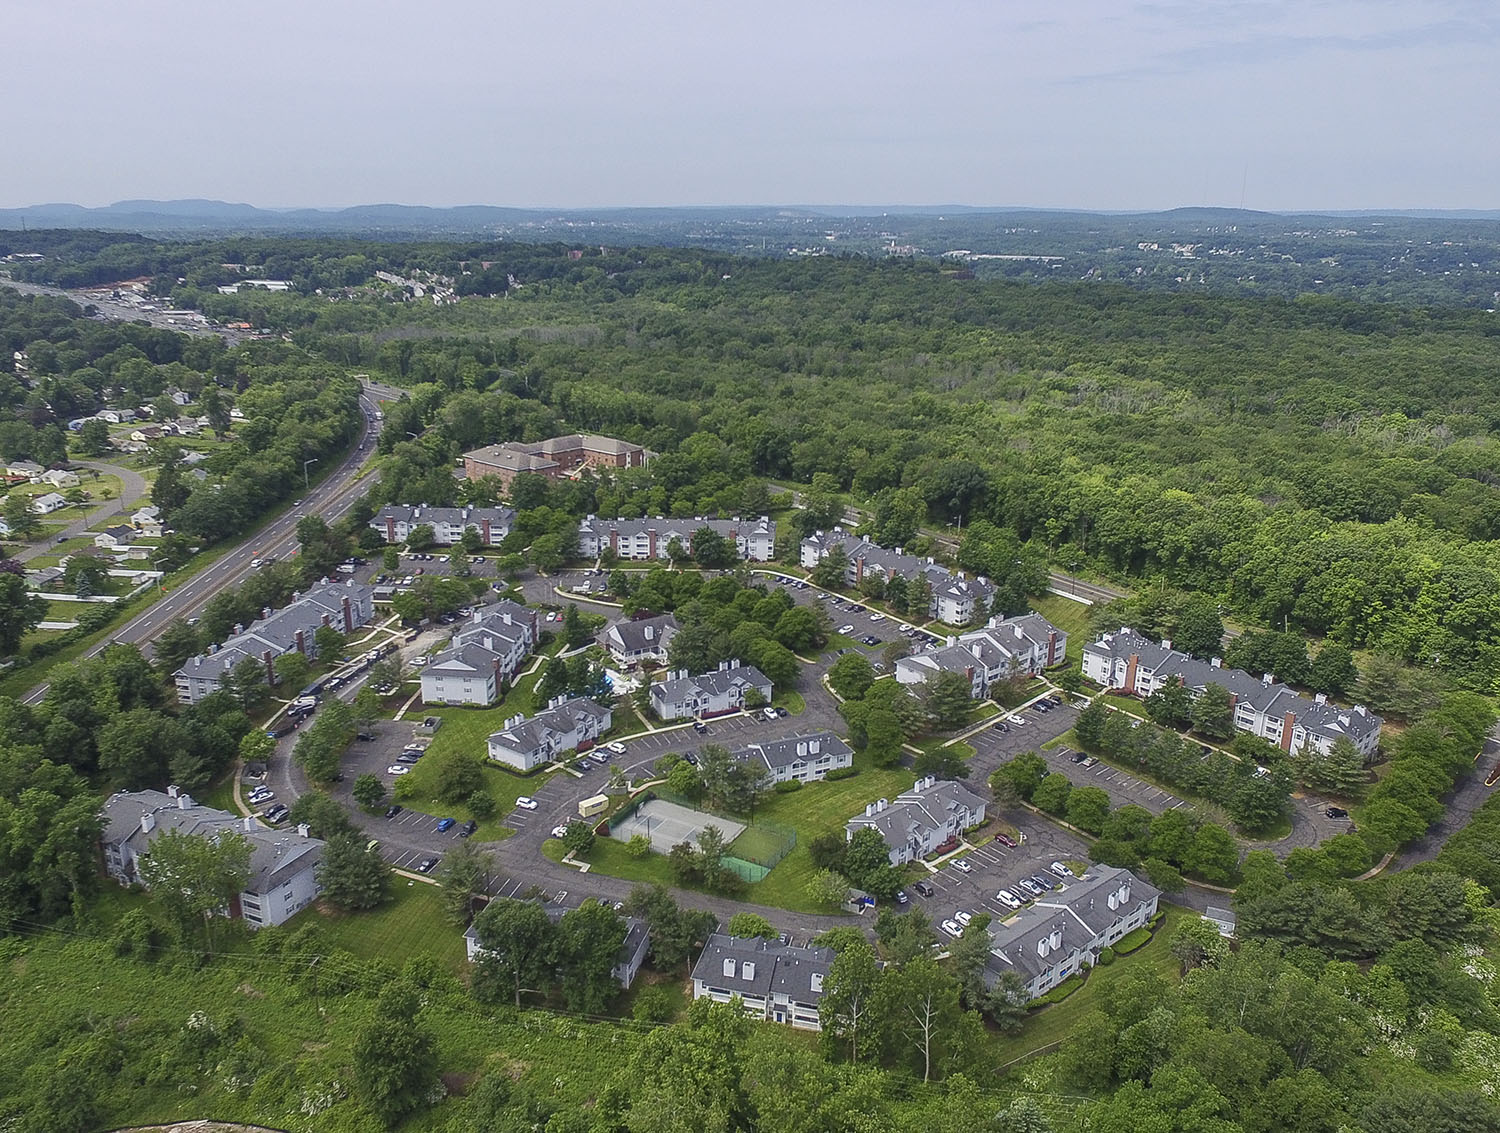 aerial view of the village at wethersfield